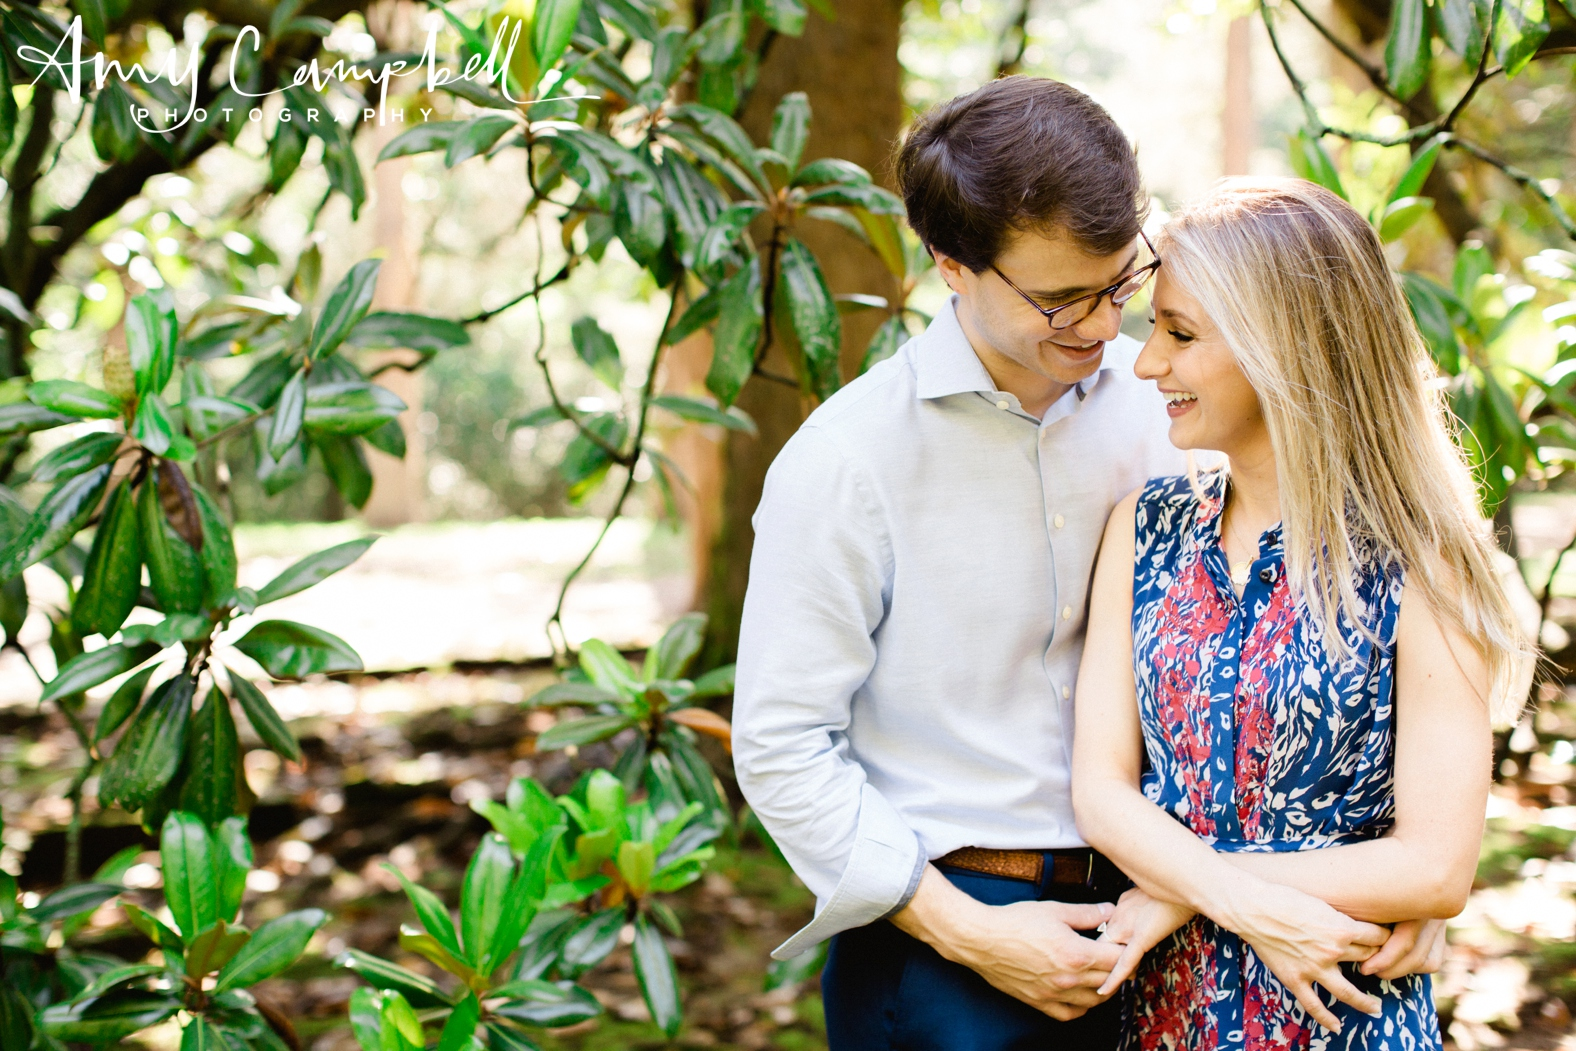 Oxford, MS Wedding - Amy Campbell Photography - Engagement Photos